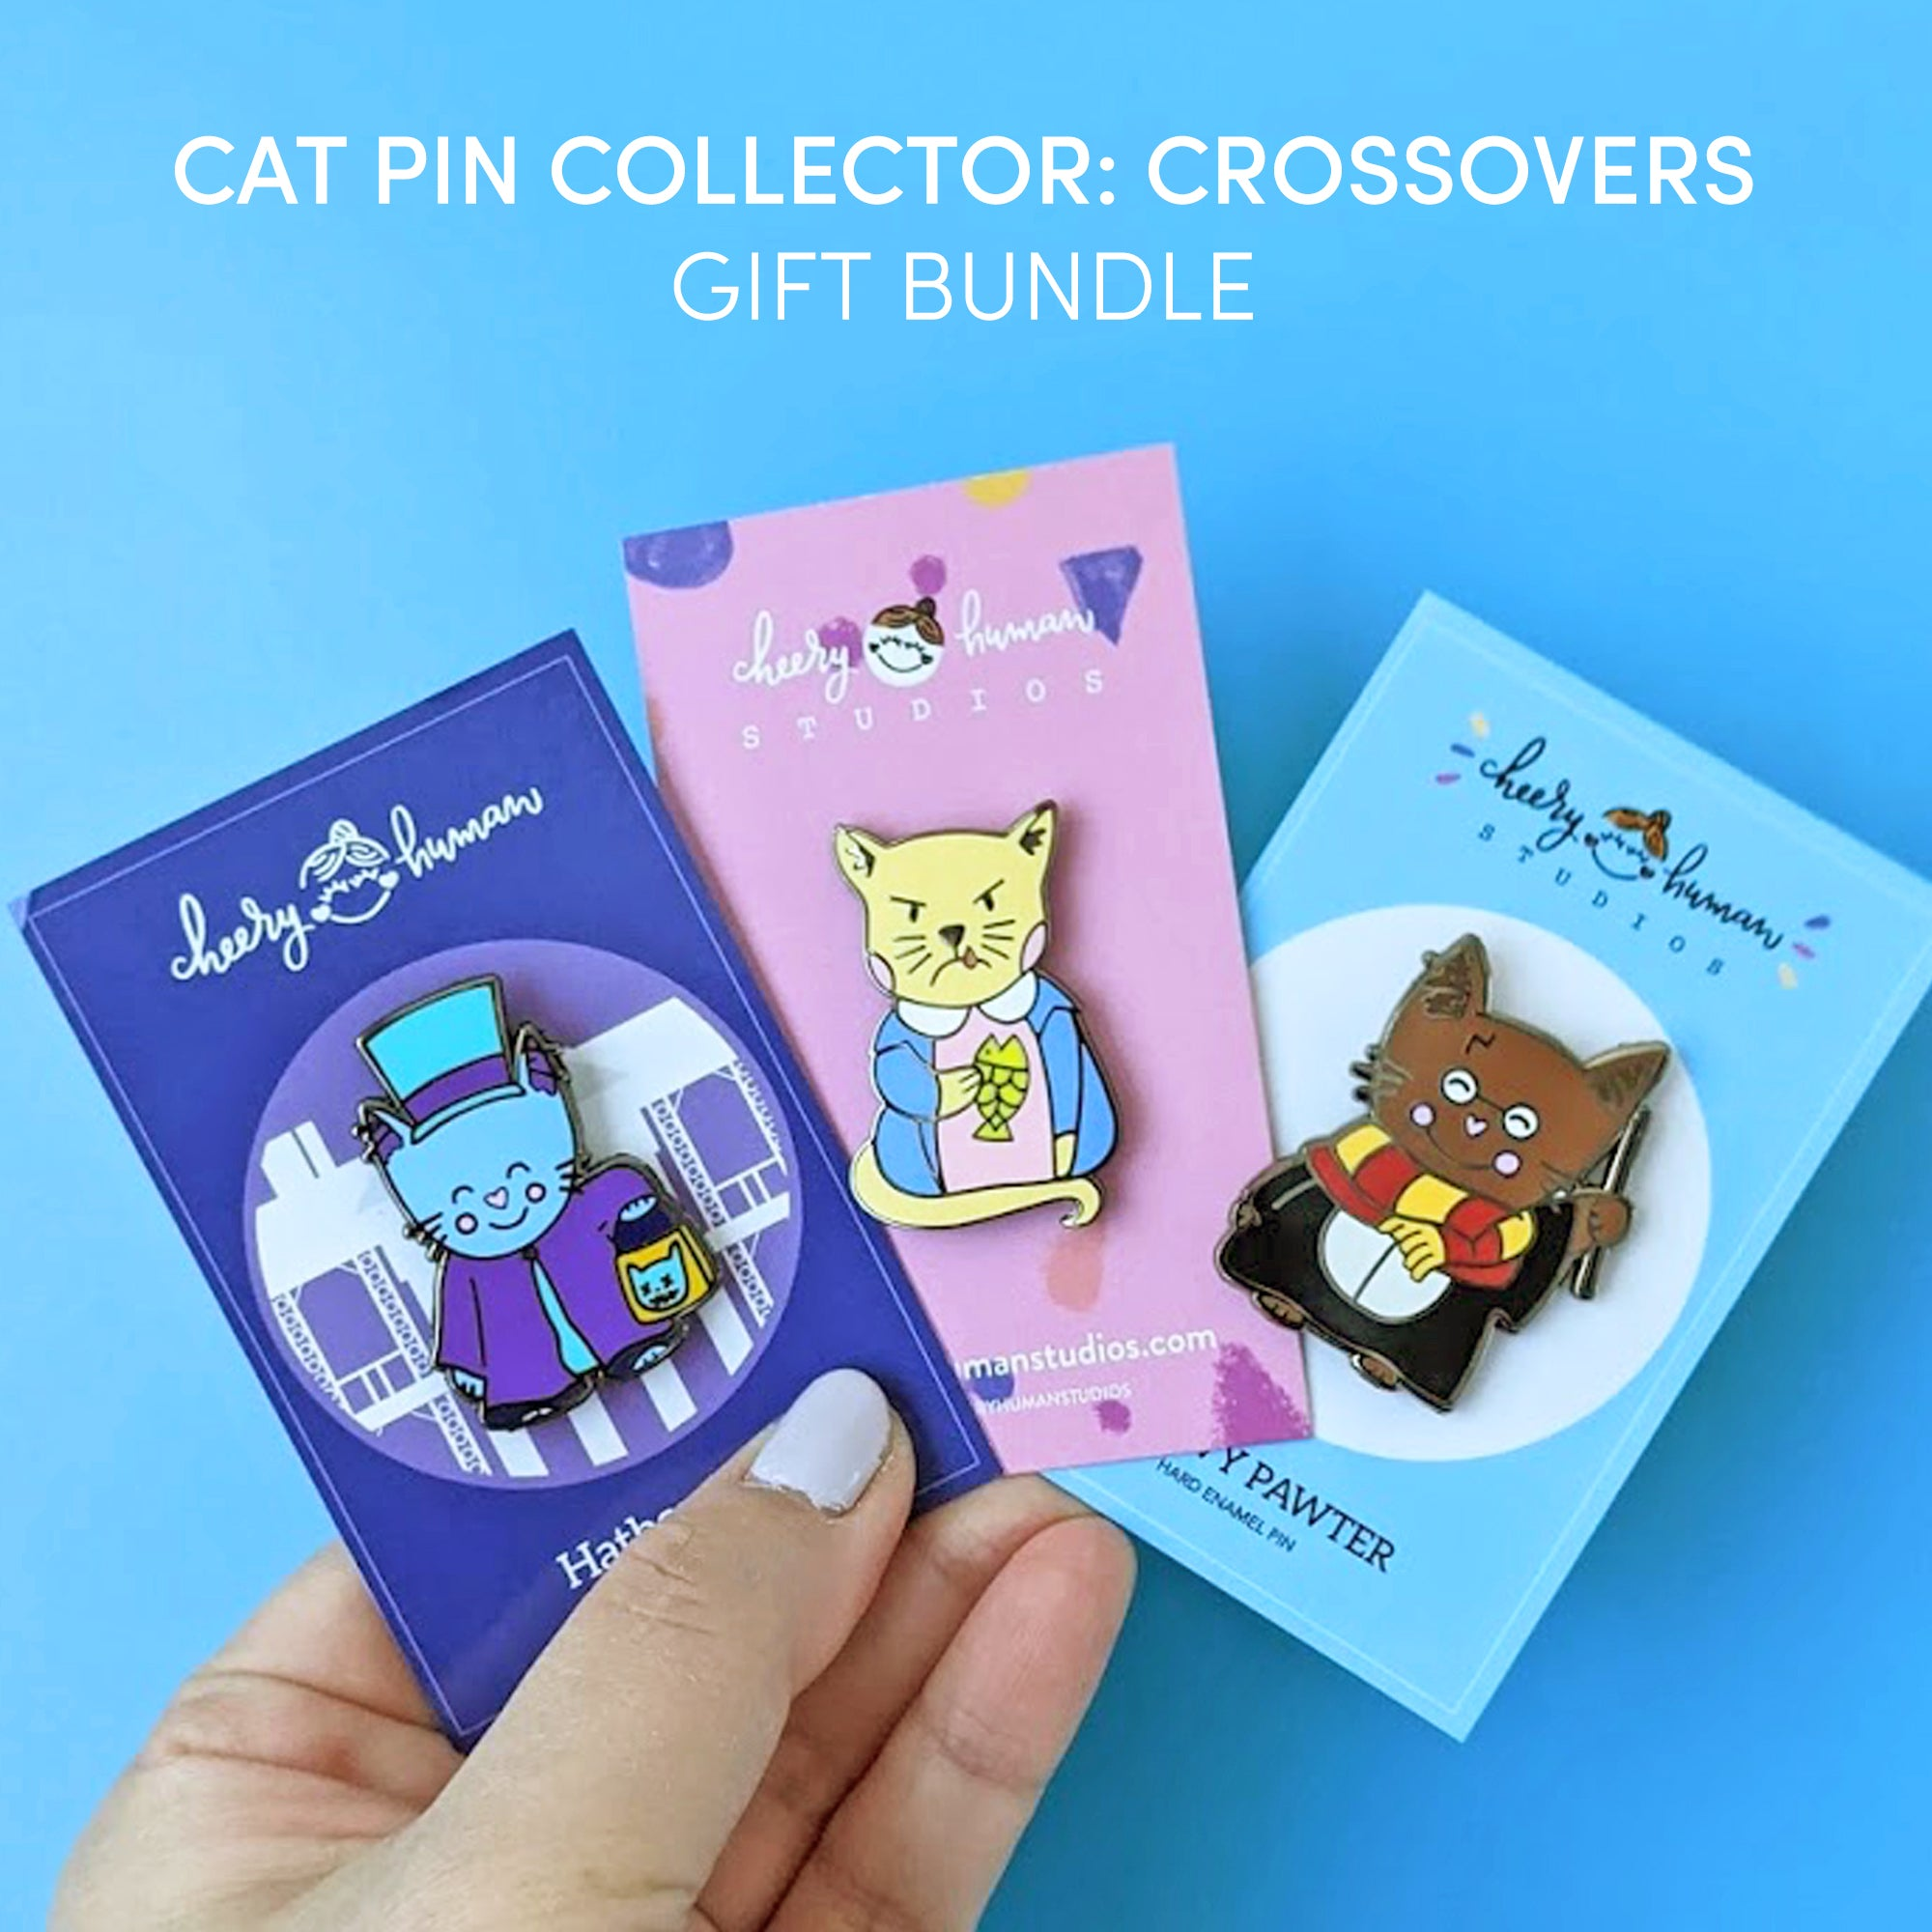 Cat Pin Collector: Crossovers - Gift Bundle